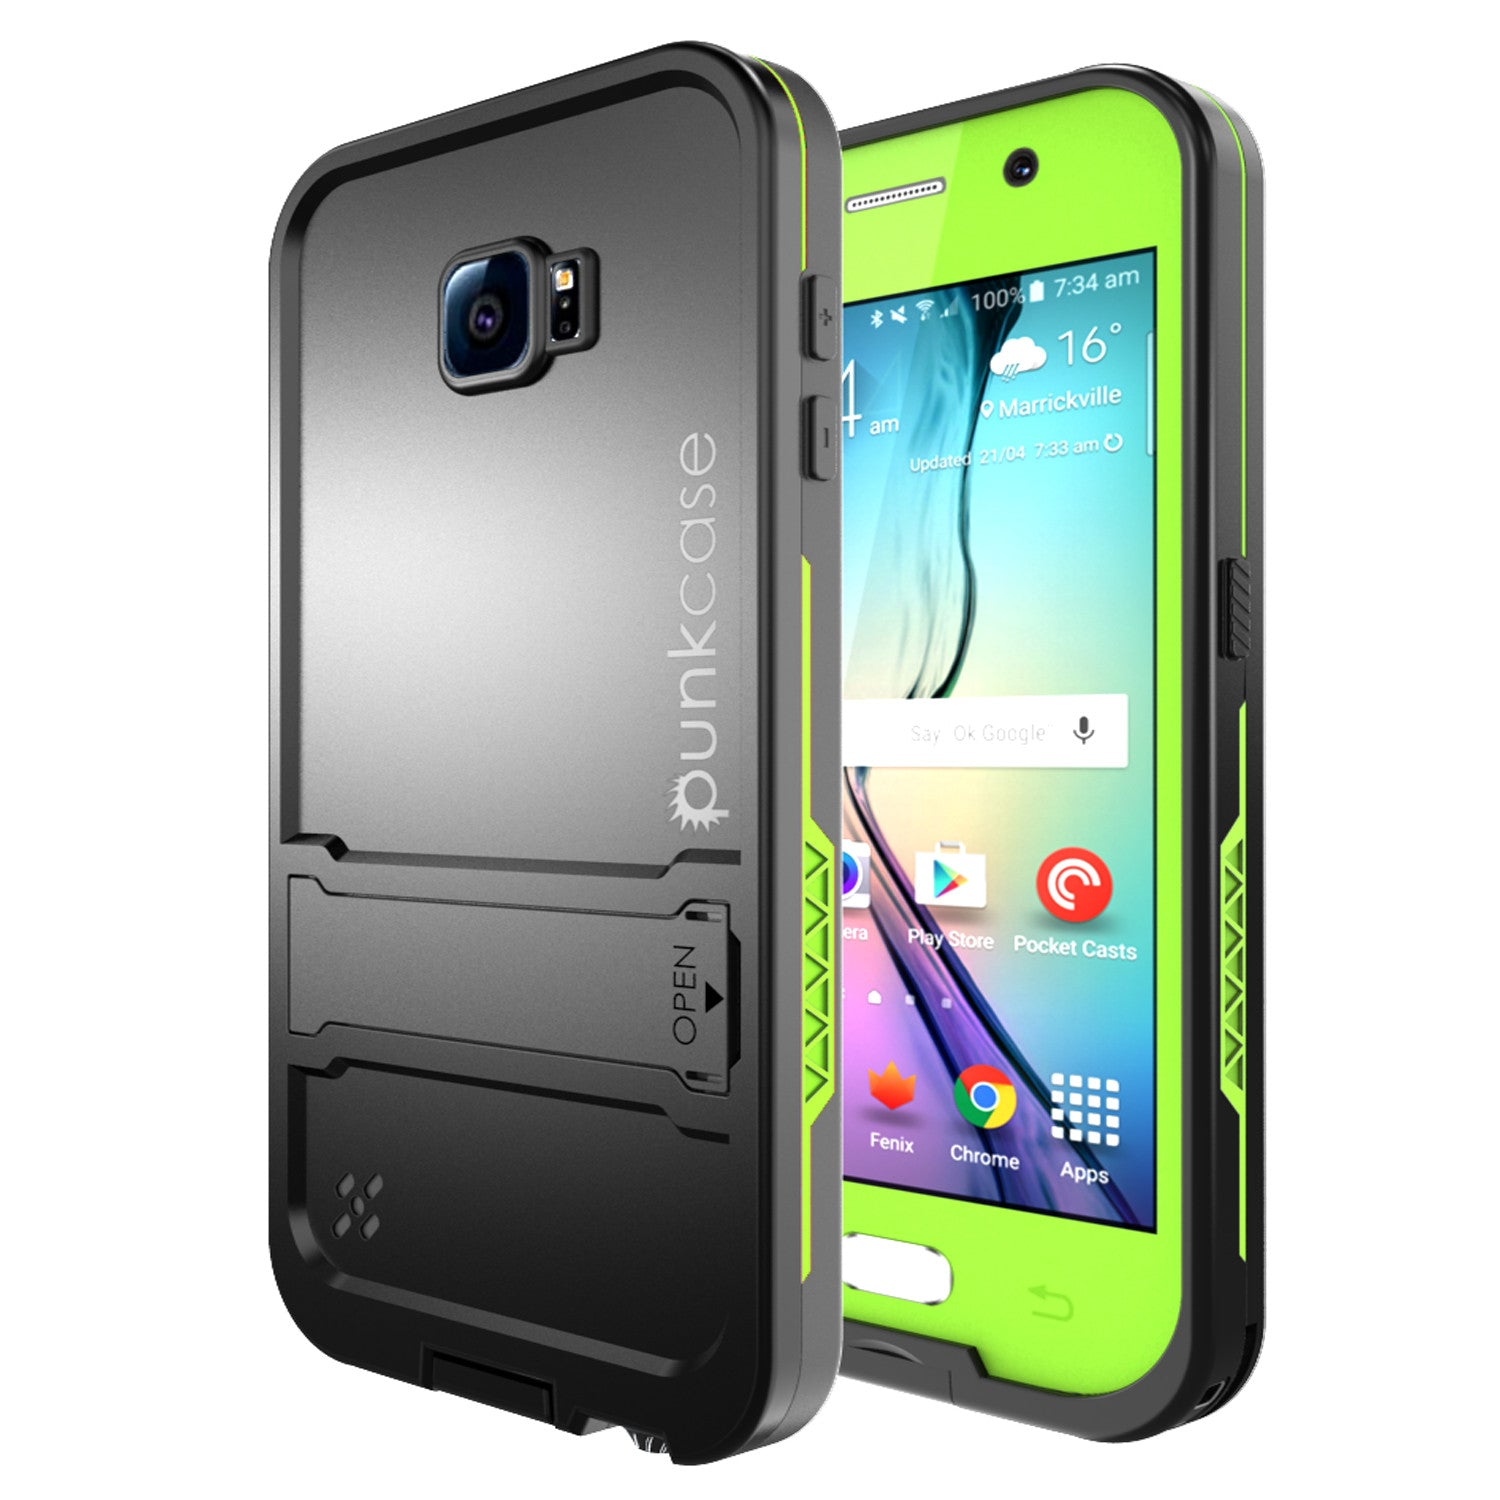 Galaxy S6 Waterproof Case, Punkcase SpikeStar Light Green Water/Shock/Dirt Proof | Lifetime Warranty